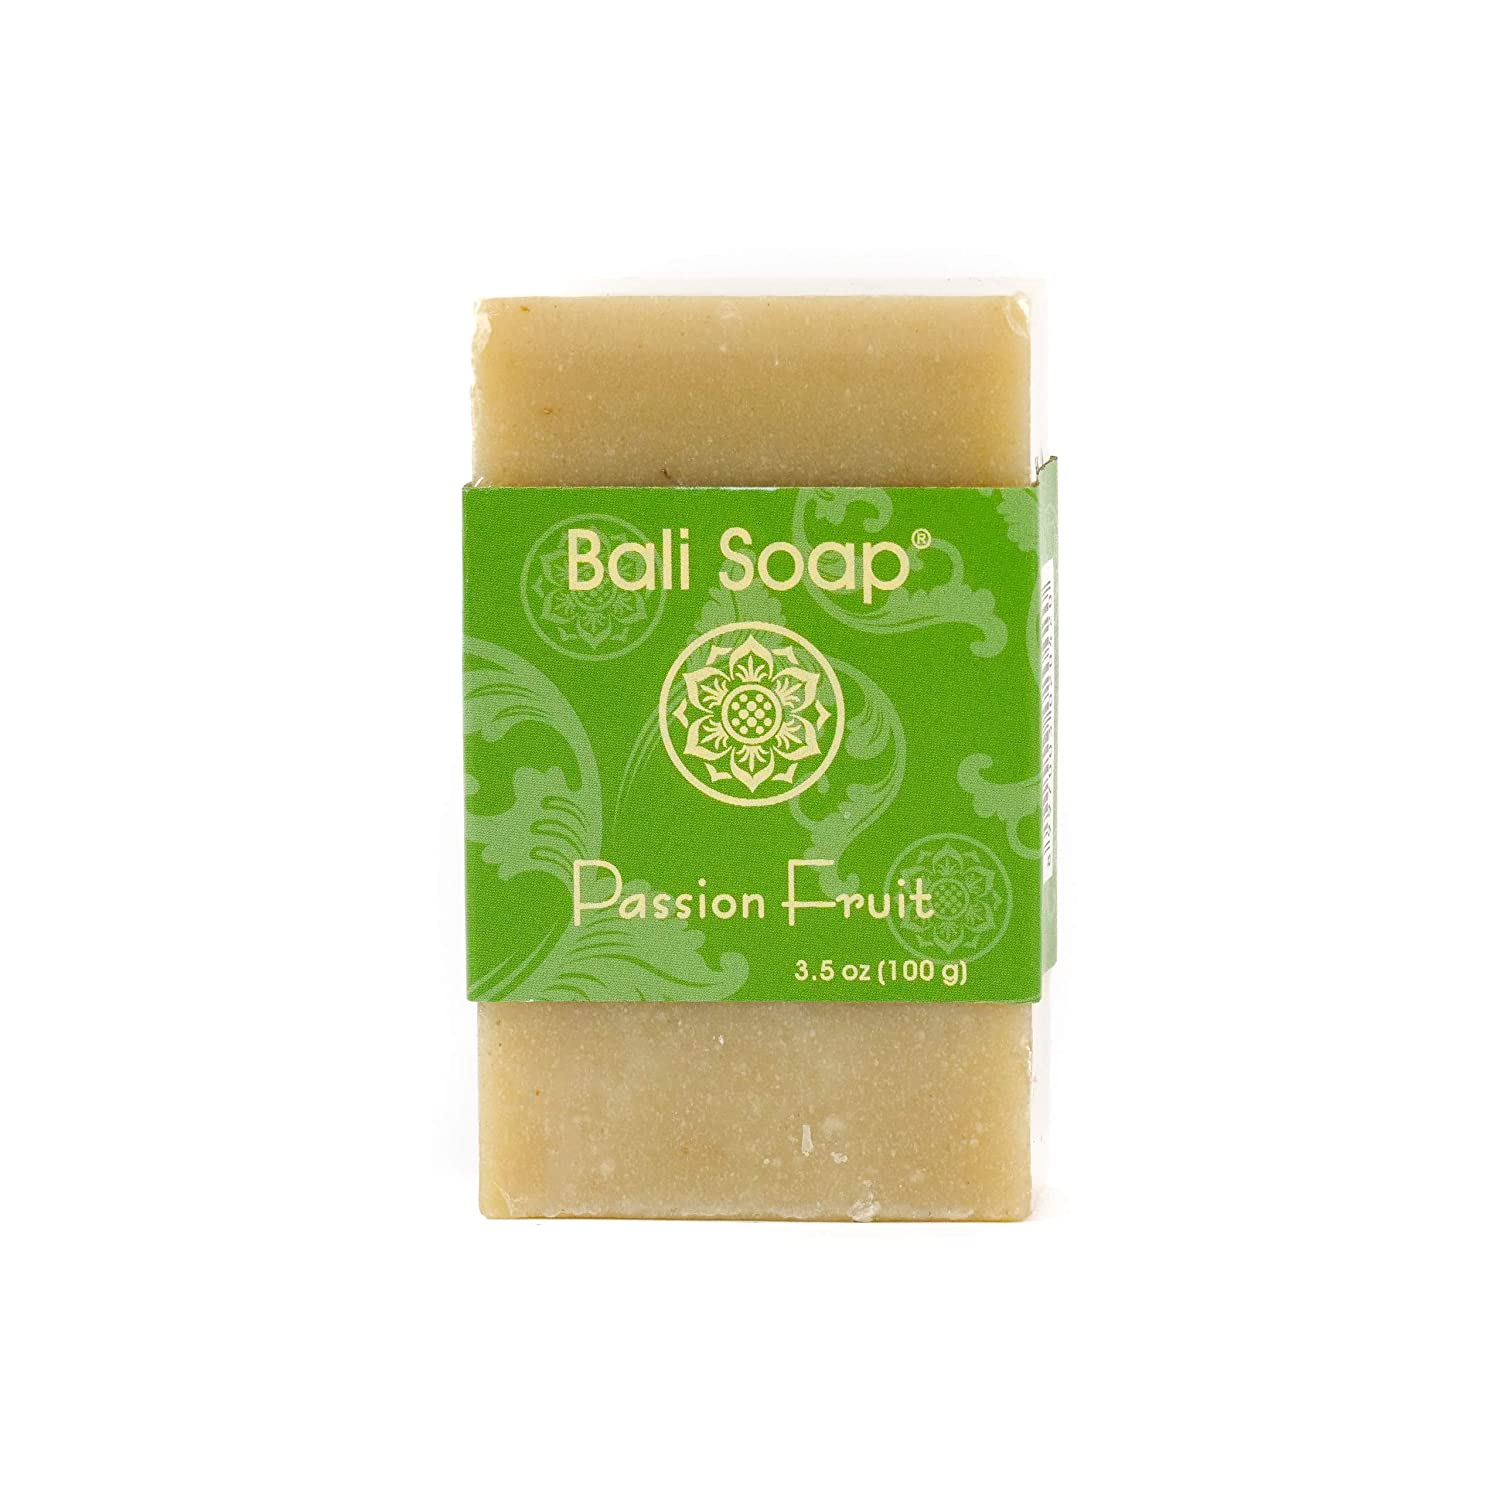 Bali Soap - Passion Fruit Natural Soap Bar, Face or Body Soap Best for All Skin Types, For Women, Men & Teens, Pack of 3, 3.5 Oz each